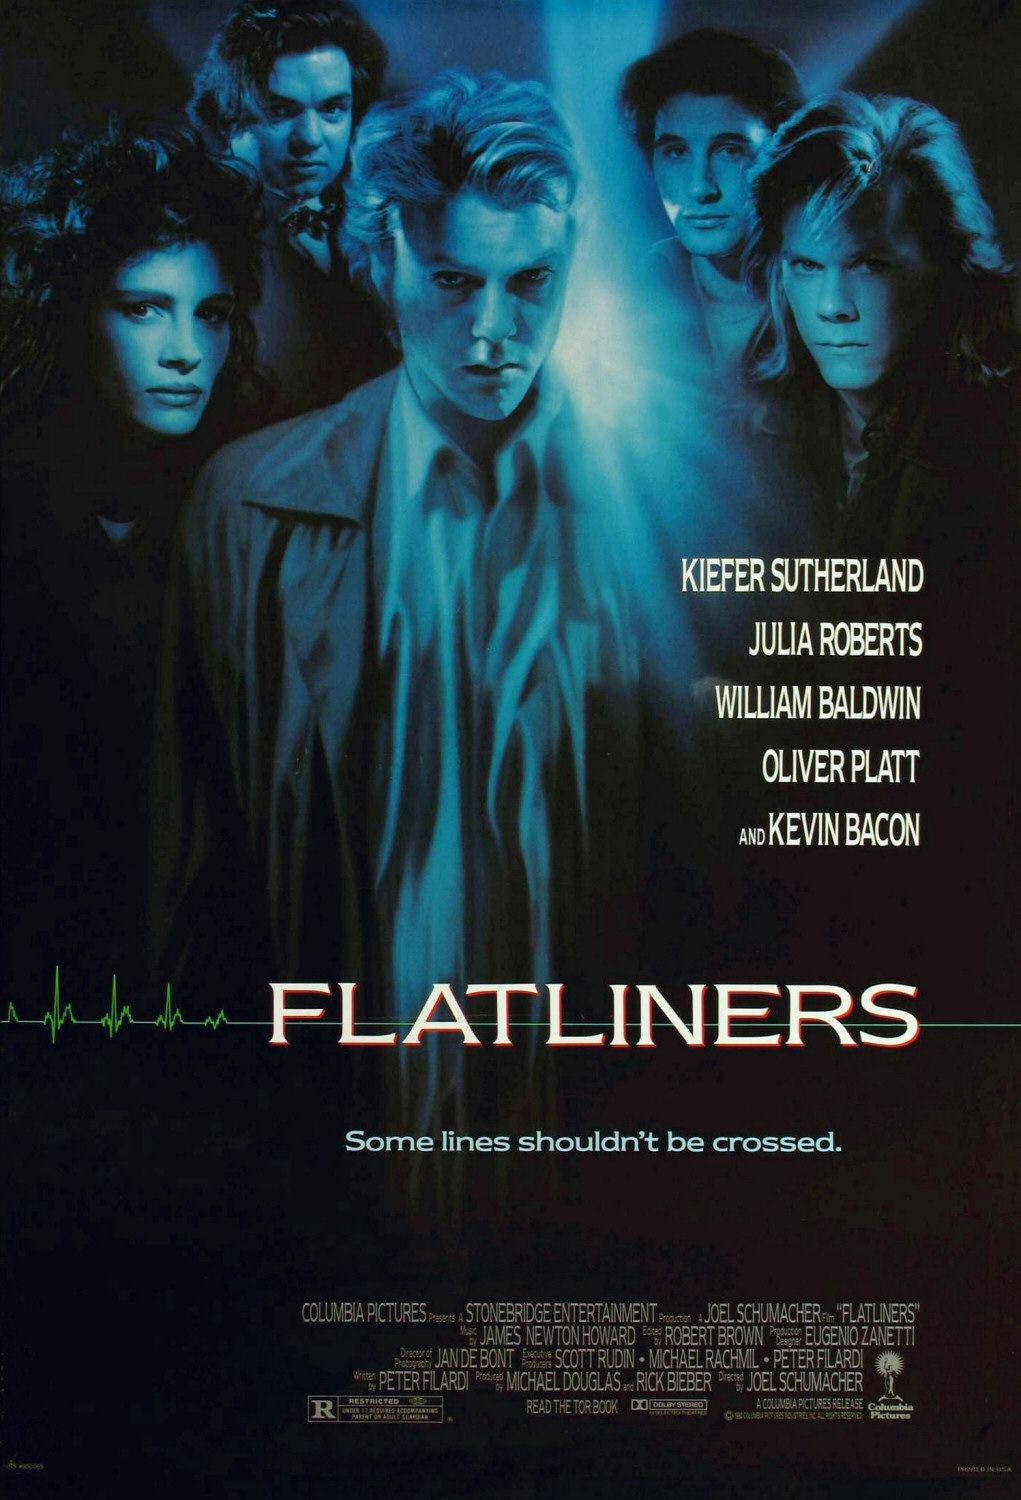 Flatliners - Linea Mortale - film del 1990 - Kiefer Sutherland - Julia Roberts - Kevin Bacon - William Baldwin - Oliver Platt - Kimberly Scott